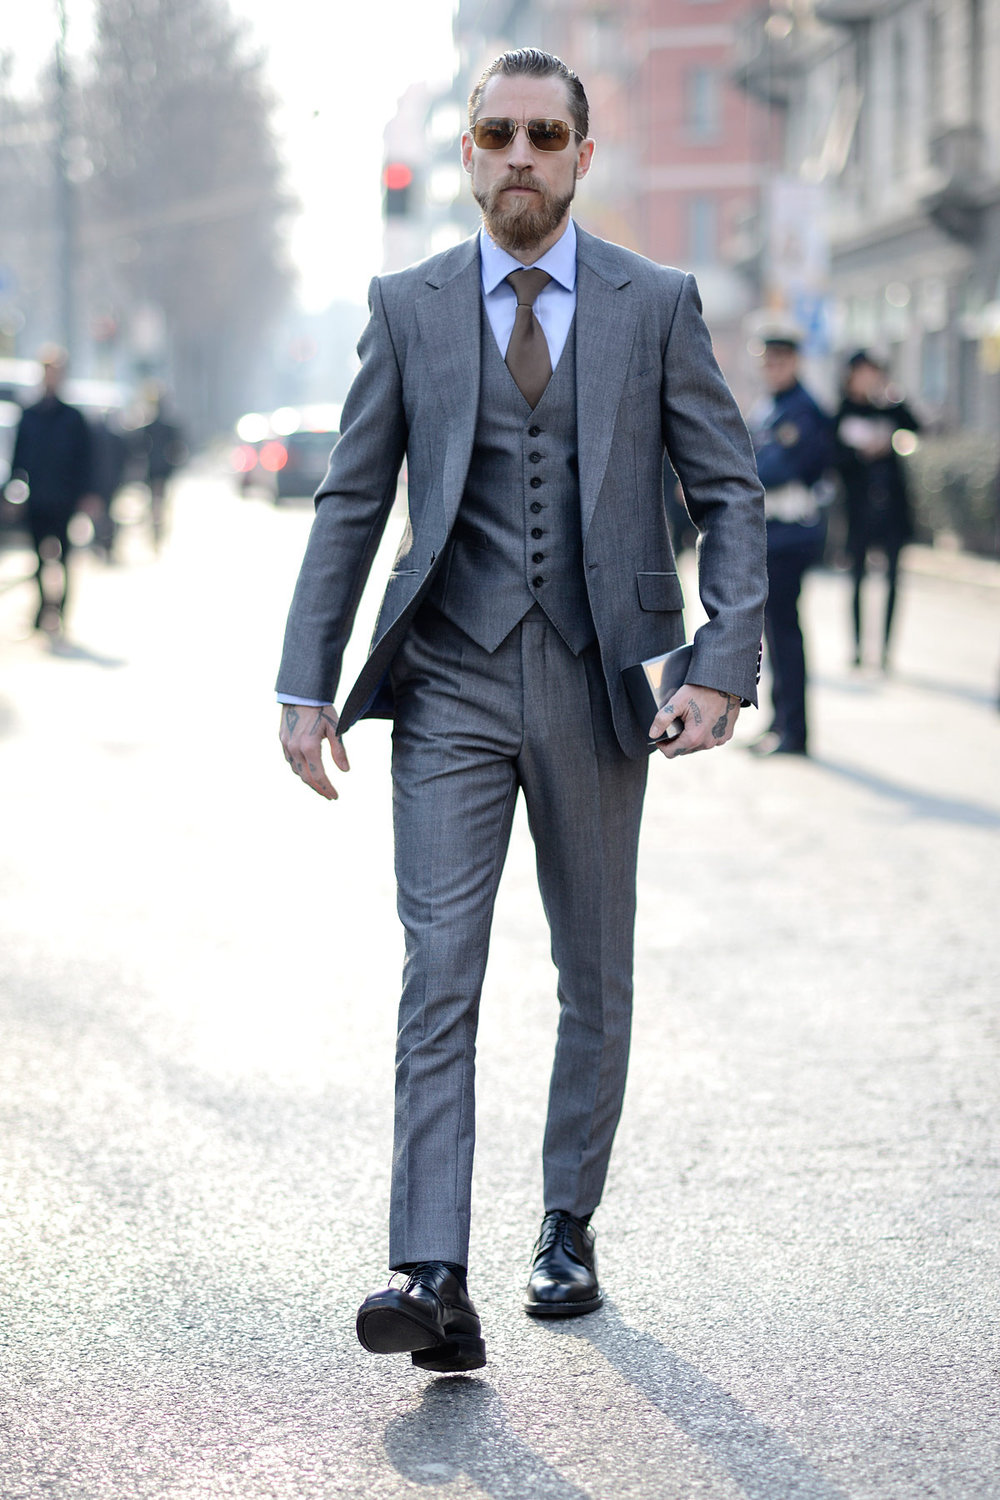 Justin-Oshea-in-grey-menswear-style-streetstyle-milan-fashion-week-suit-gray-glasses.jpg